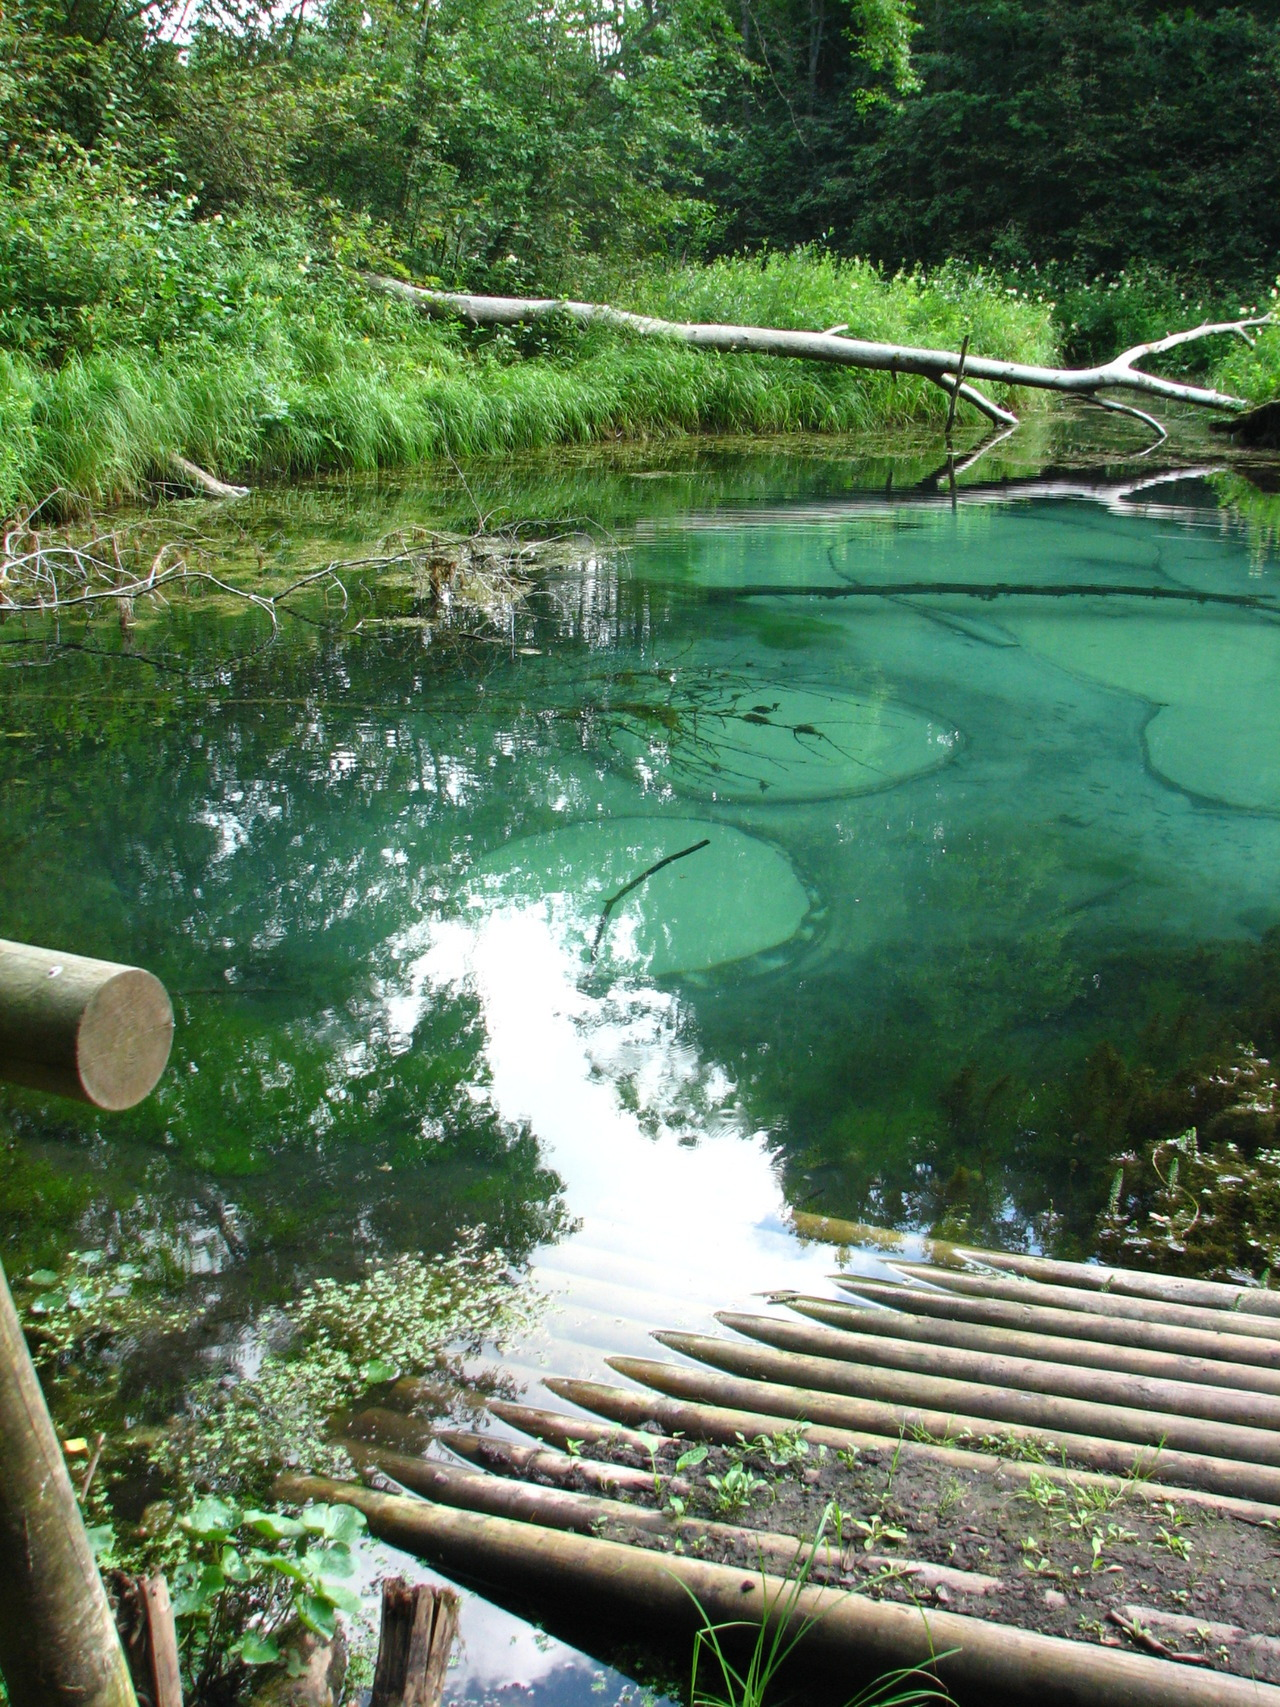 The Blue Springs of Saula, freshwater springs located in Harju County, northern Estonia.